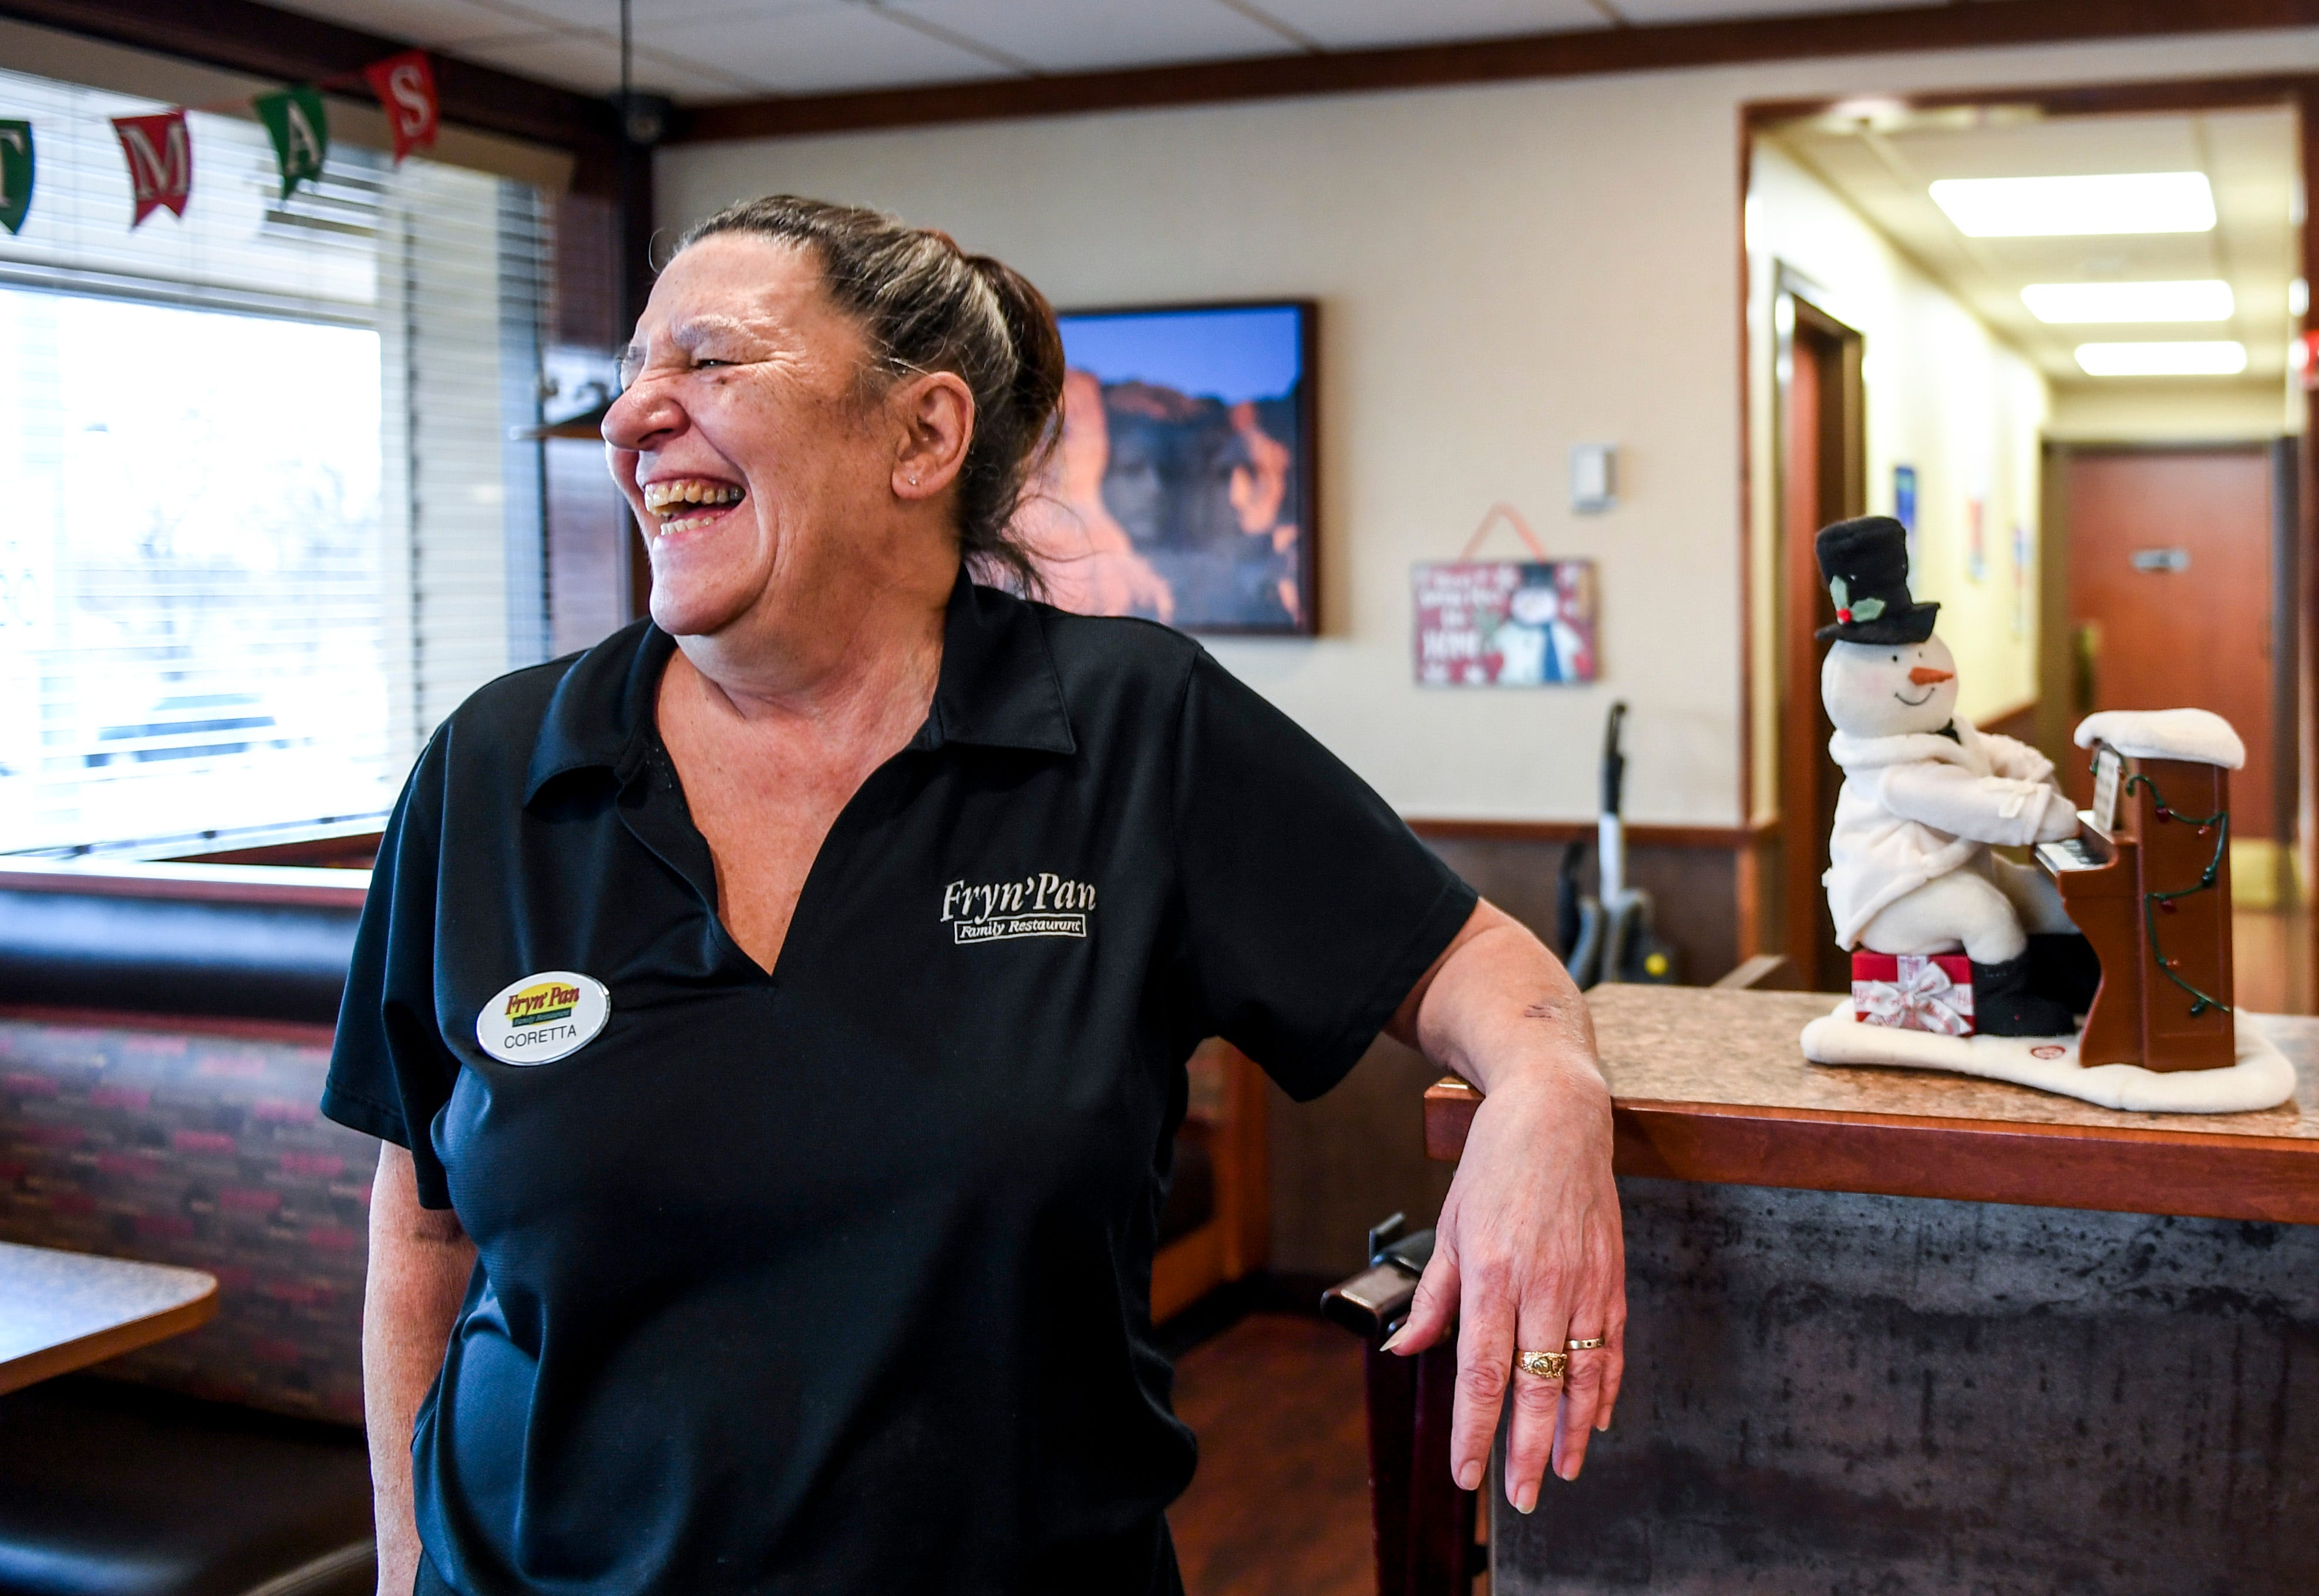 Large Tip Holiday Surprise Means Nearly 1 400 Tip For Sioux Falls Waitress